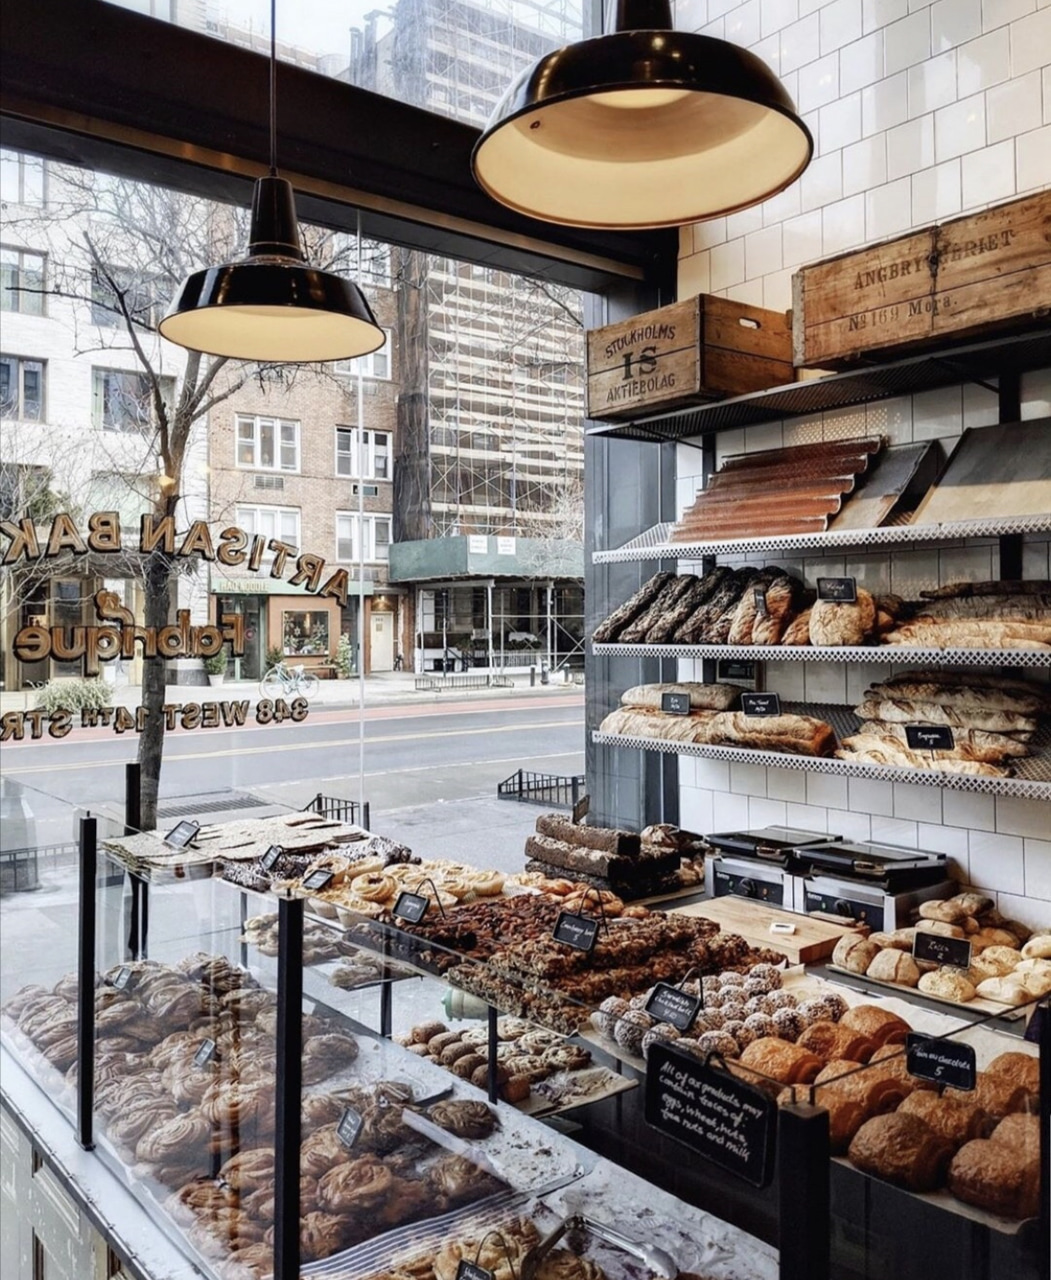 article, bakery, and cafe image